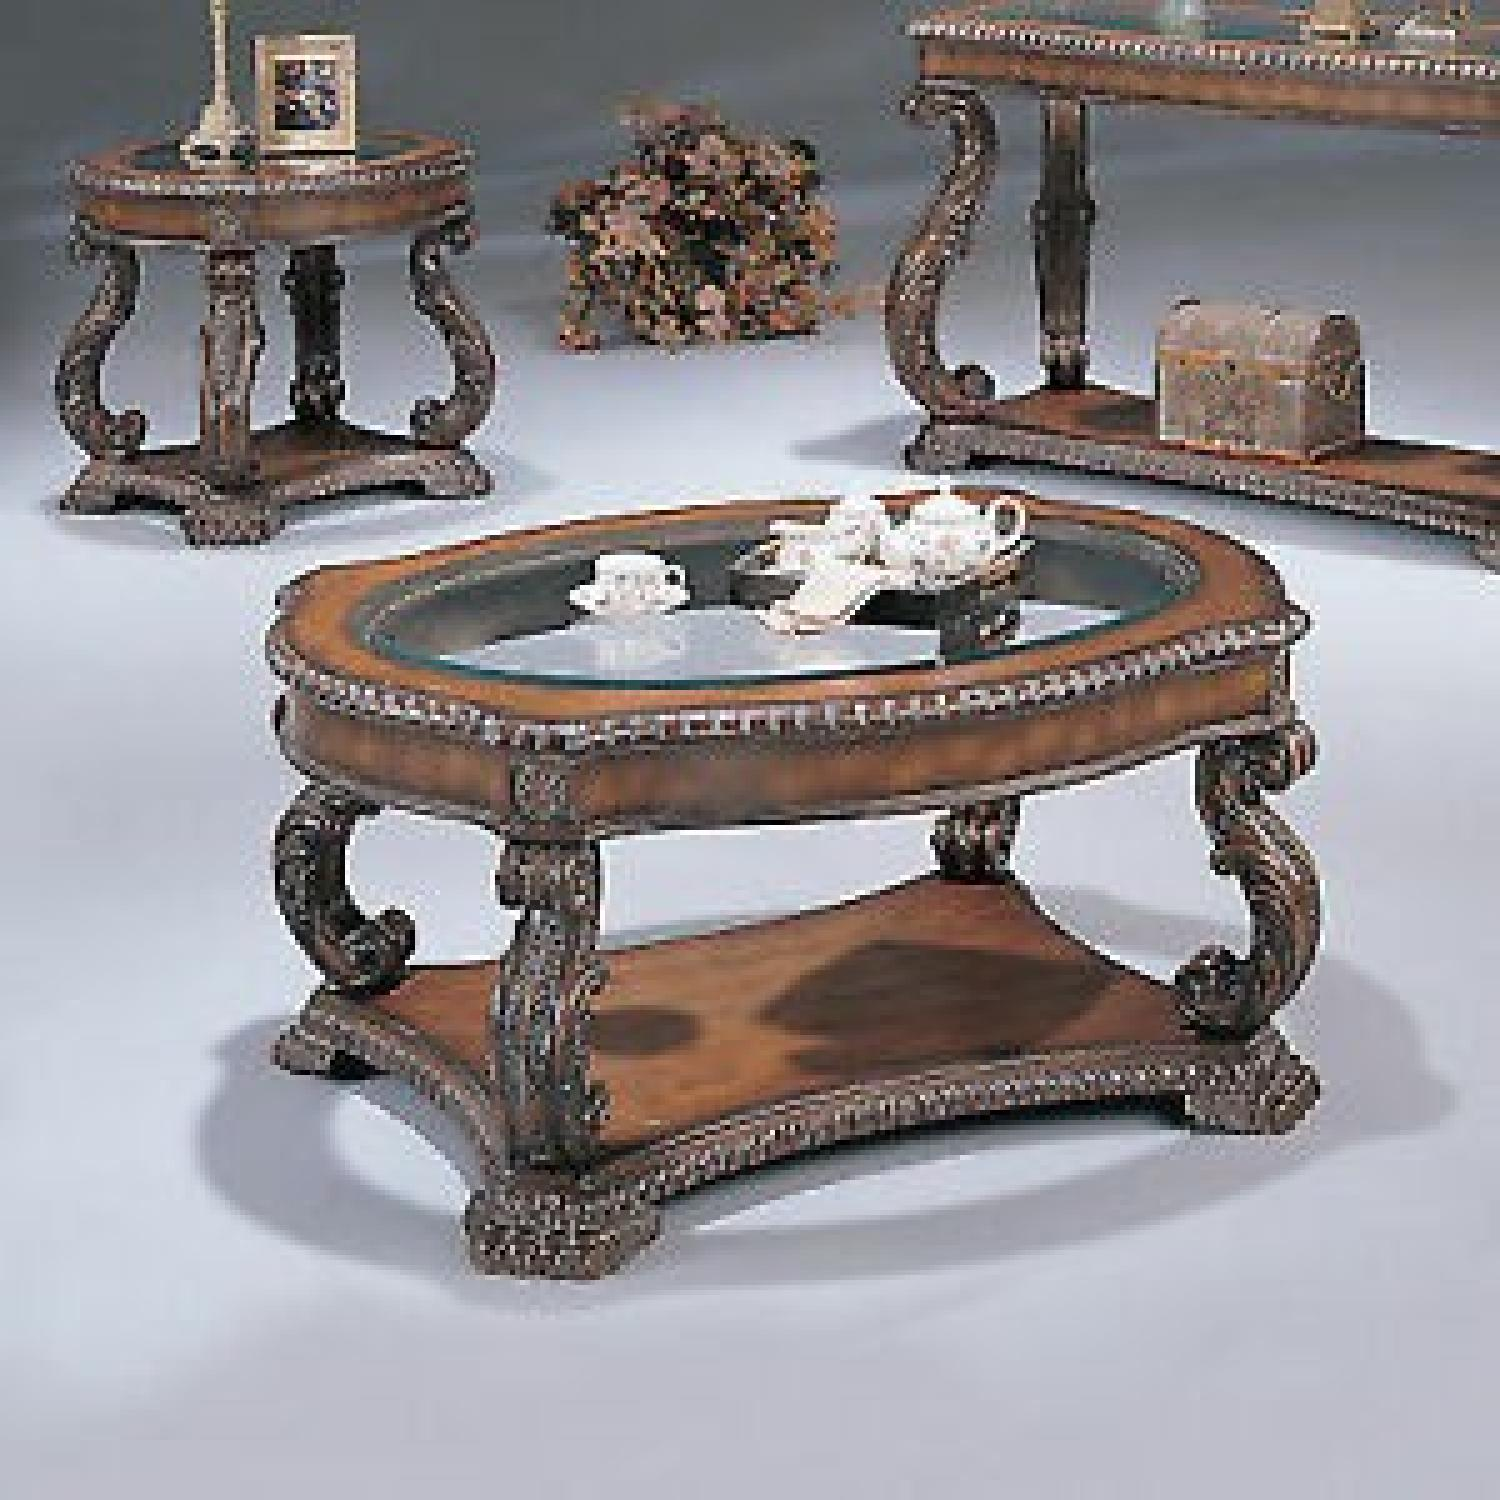 Antique Brown Coffee Table w/ Glass Top - image-2